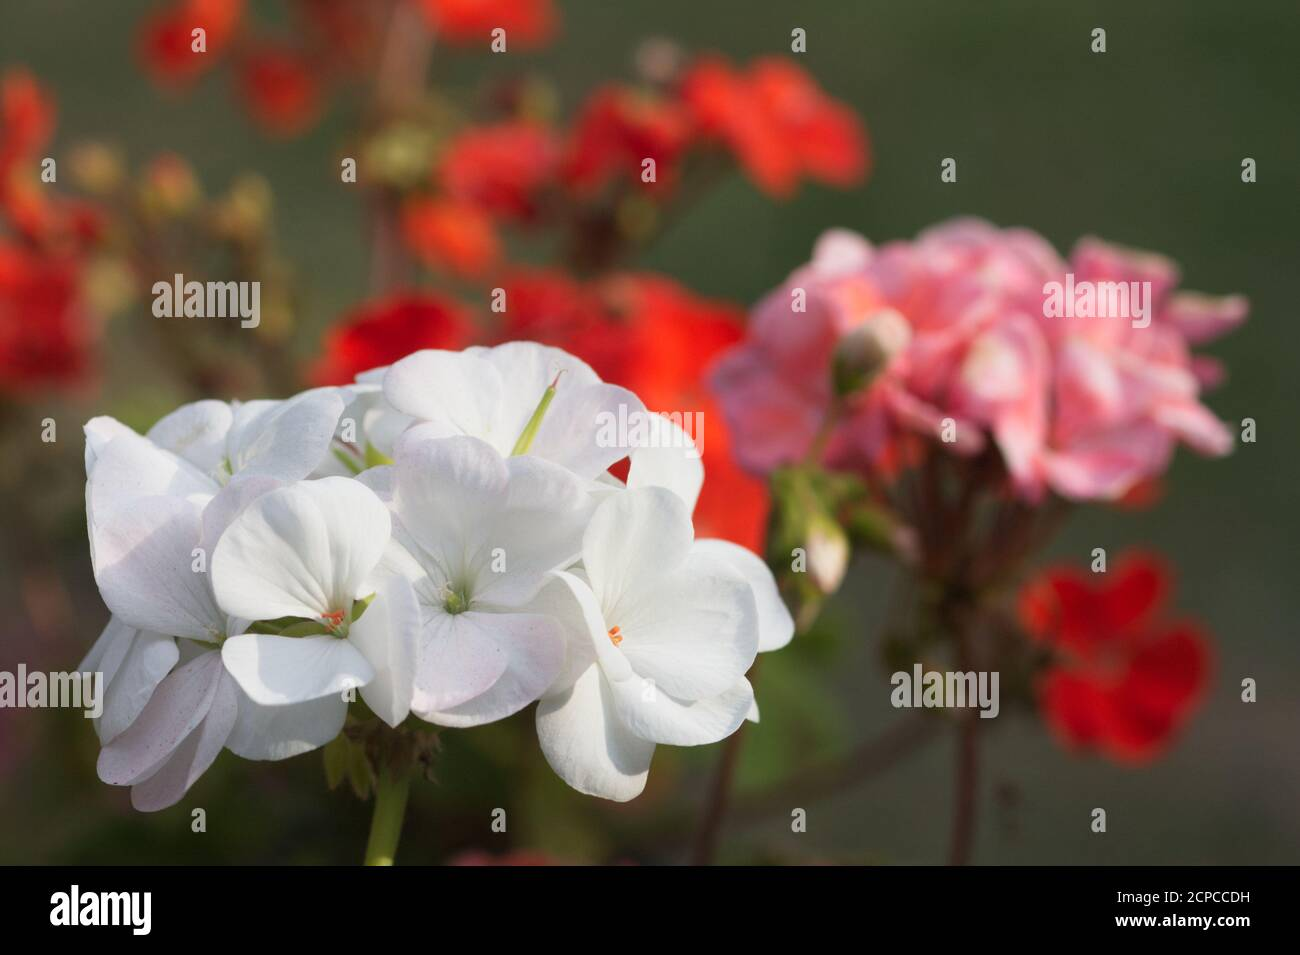 Close-up of white zonal Pelargonium flower against a background of red and pink Pelargoniums Stock Photo